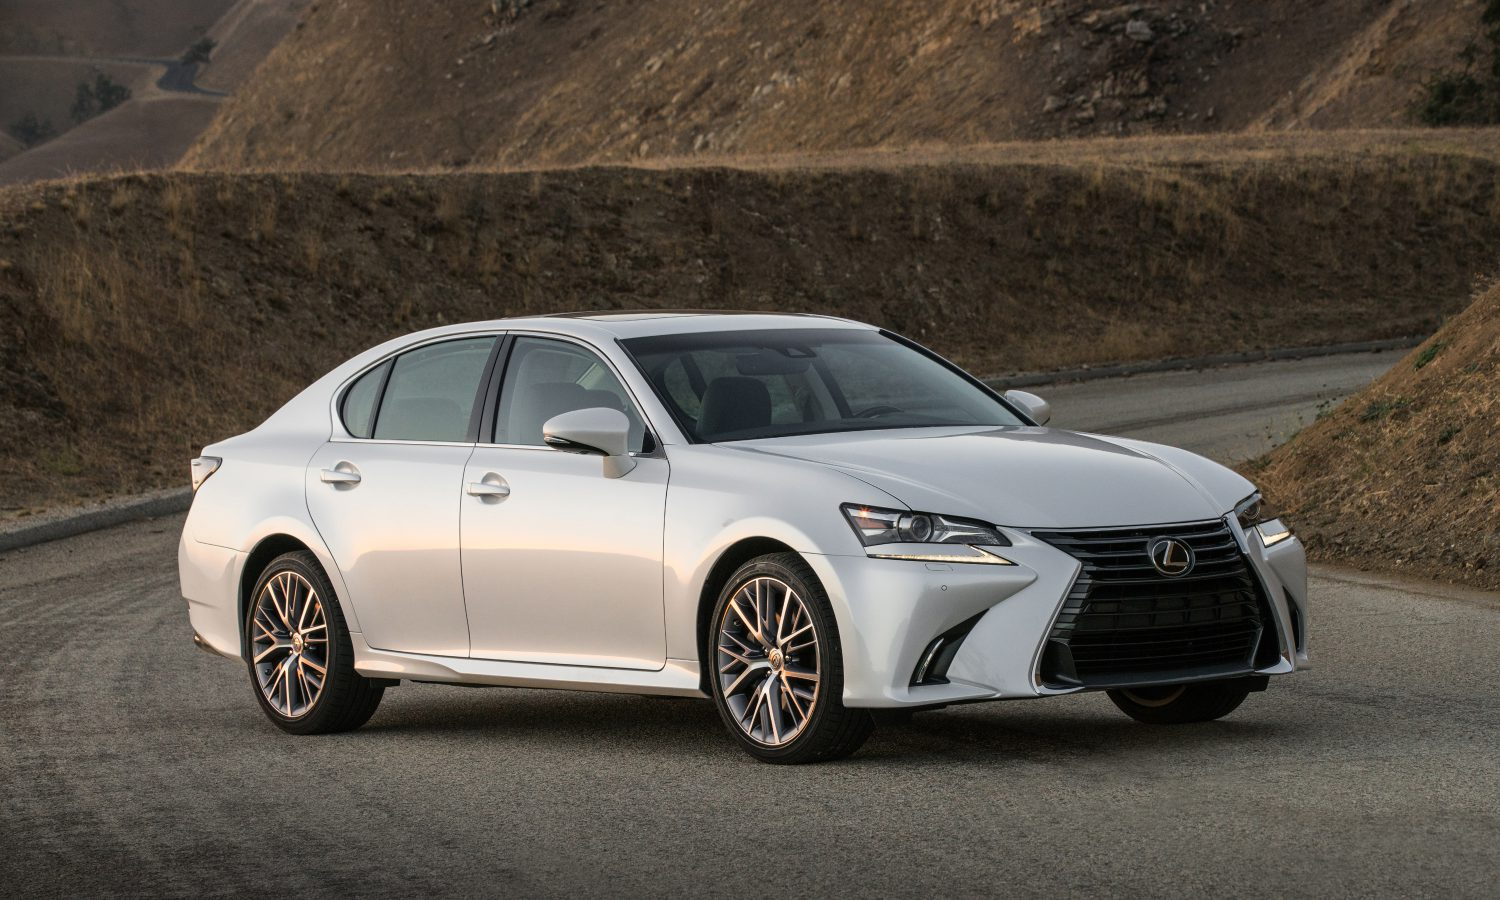 Luxury and Handling with a Sharper Edge: The 2018 Lexus GS